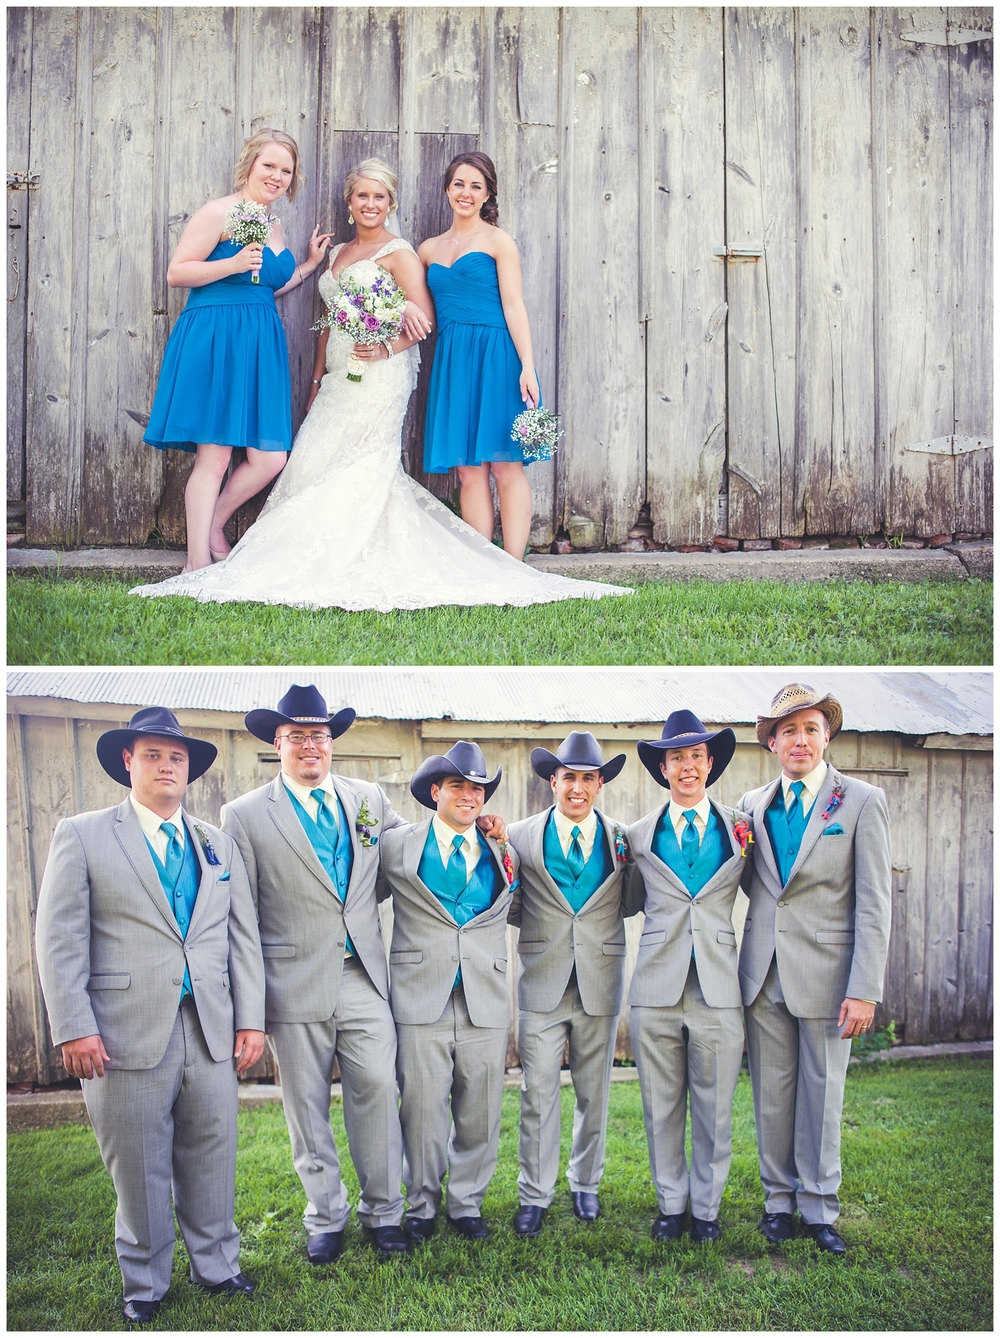 By Kara Photo-Wedding-Wedding Photography-Central Illinois Wedding and Portrait Photographer-Jacksonville Illinois Wedding Photographer